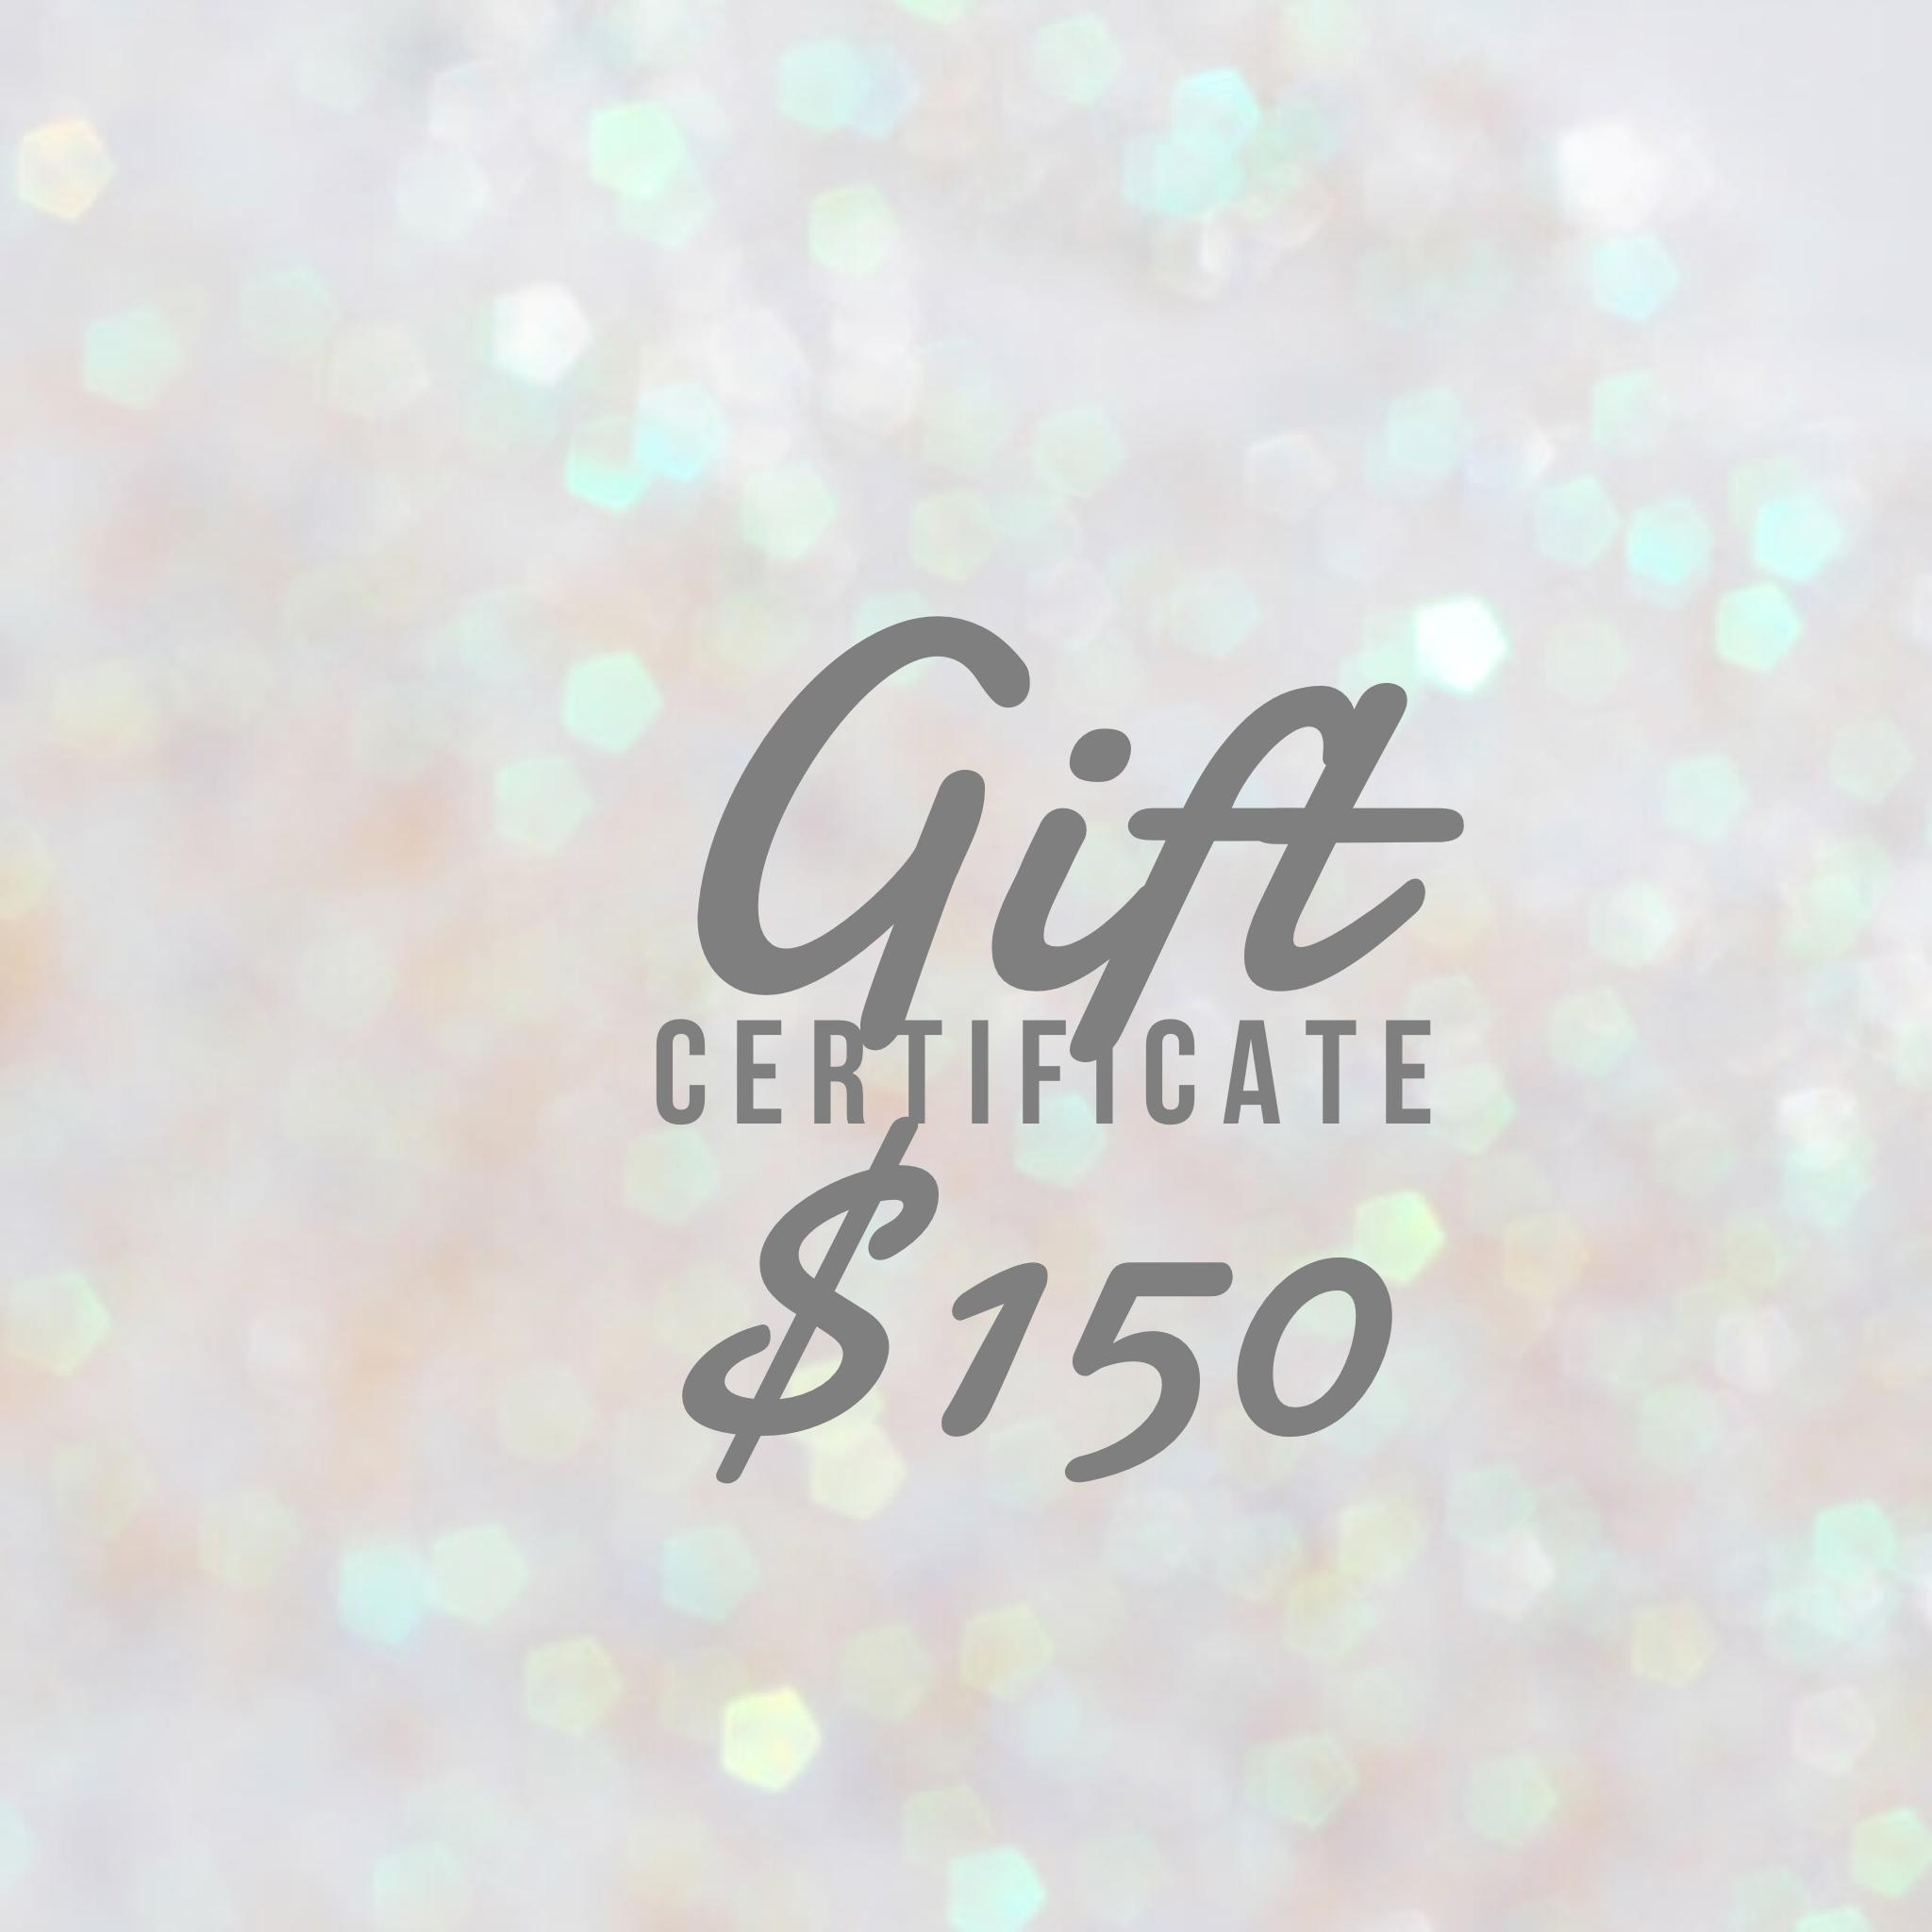 Gift Certificate $150